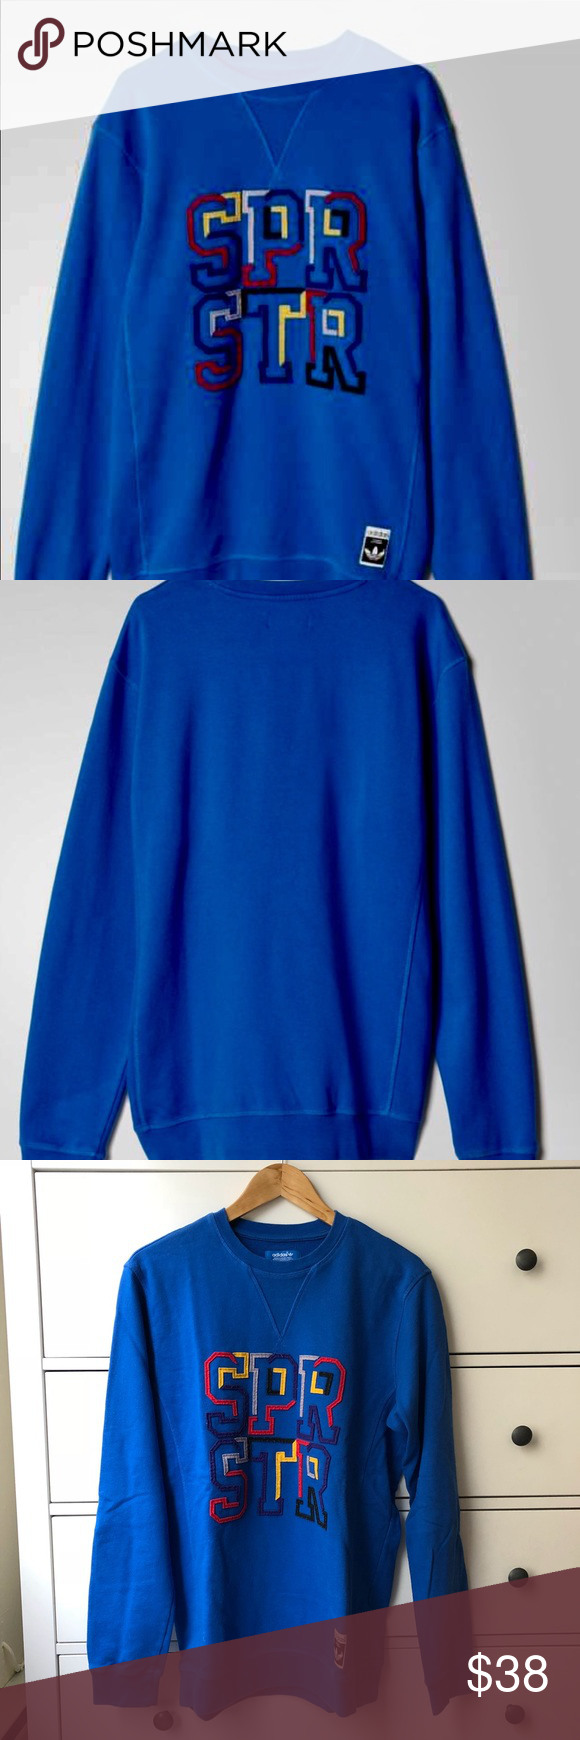 731a3706a7ae Adidas Superstar Sweatshirt Adidas Superstar sweatshirt( men) oversized for  women. Like new condition Color  Blue adidas Other